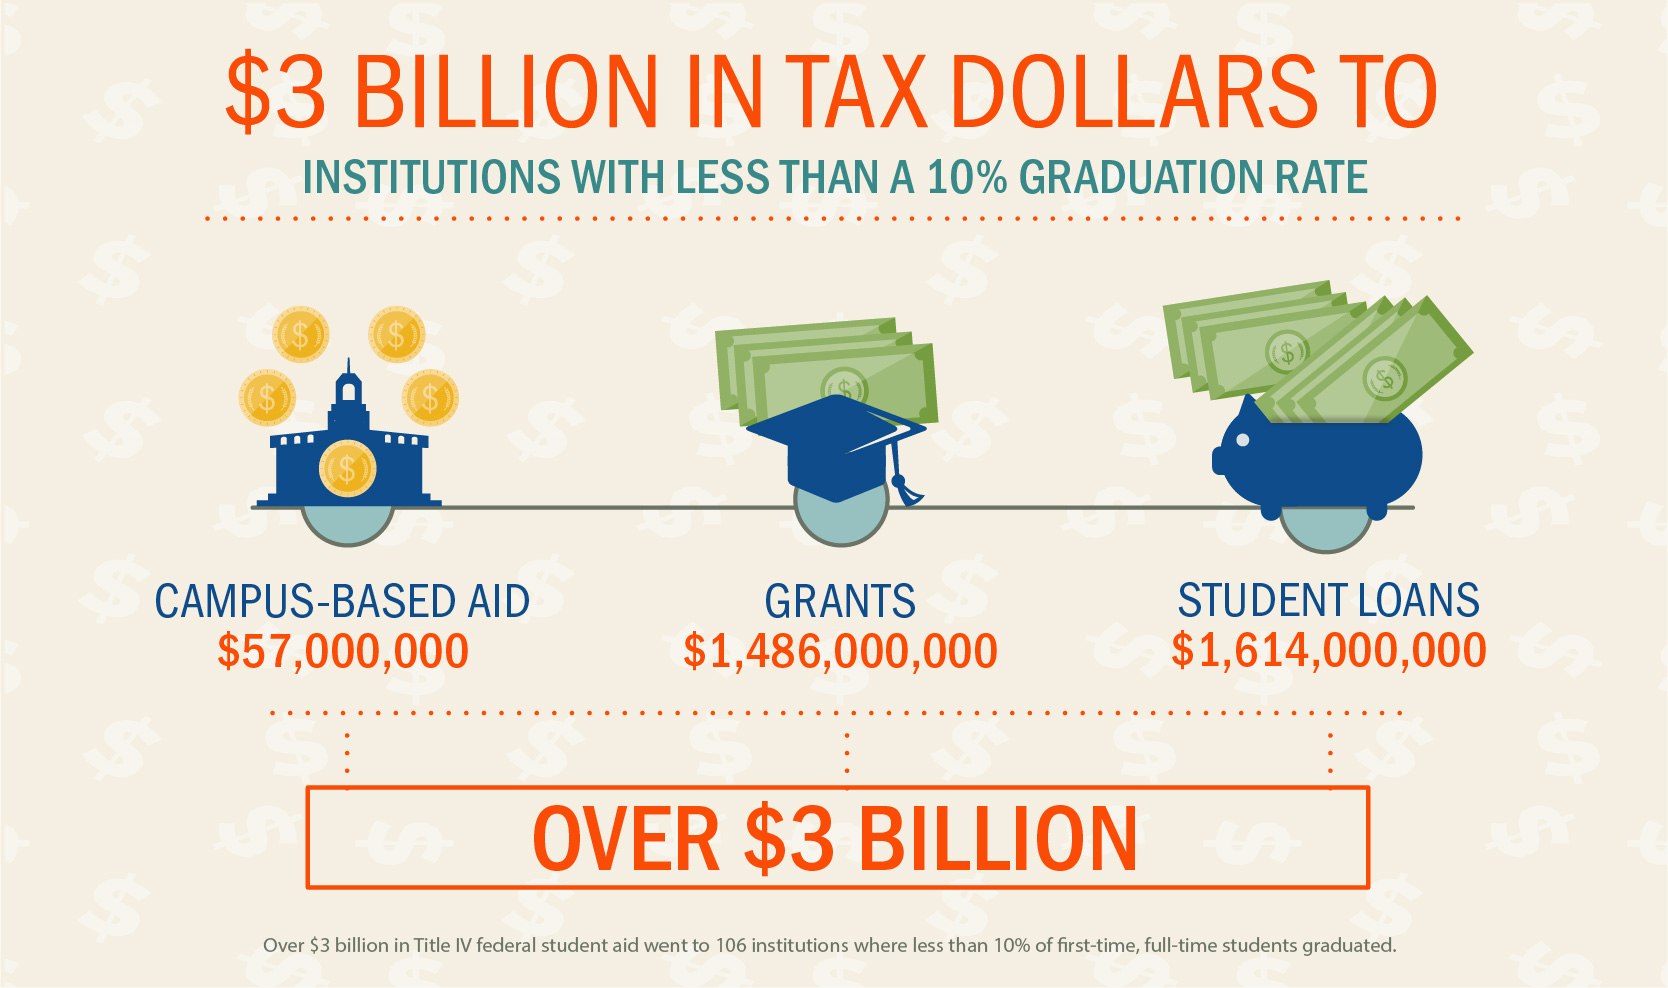 $3 billion in tax dollars went to institutions with less than a 10% graduation rate